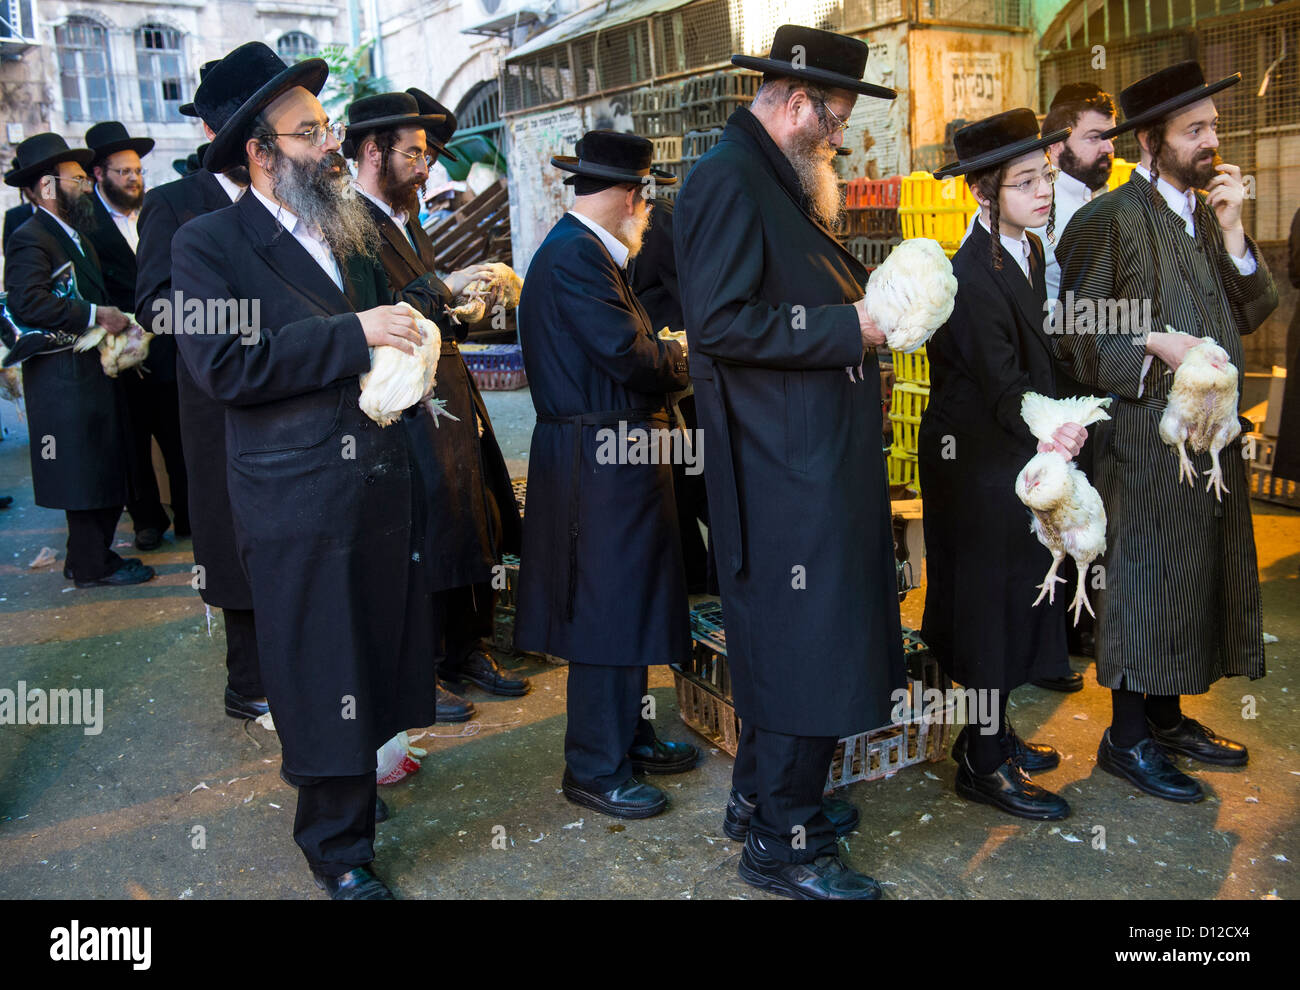 An ultra Orthodox Jewish men prays with a chicken during the Kaparot ceremony held in Jerusalem Israel - Stock Image